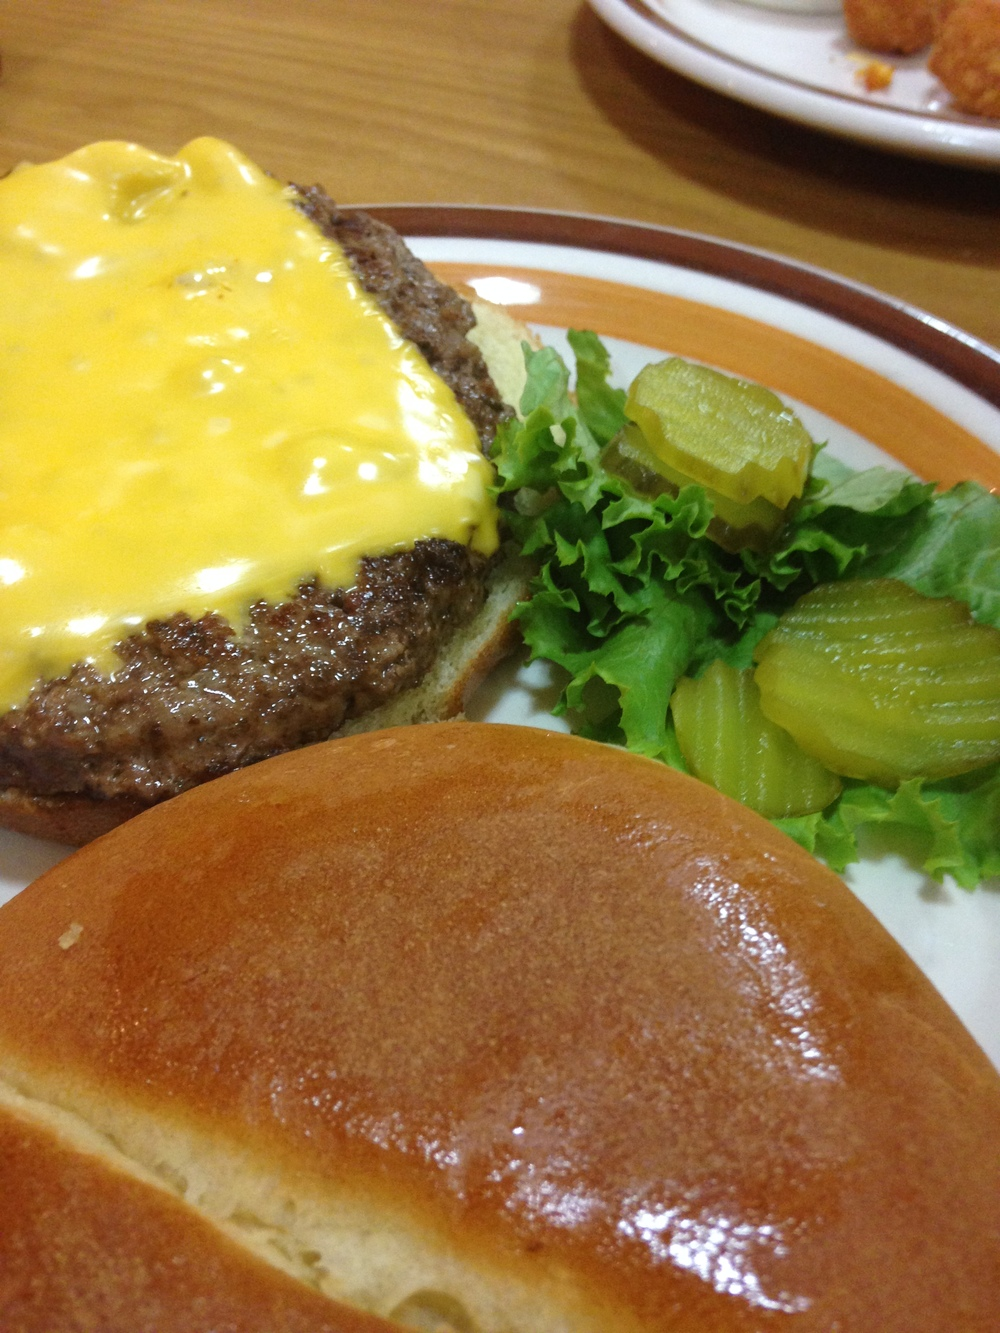 Frontier-Cafe-Cheeseburger.jpg